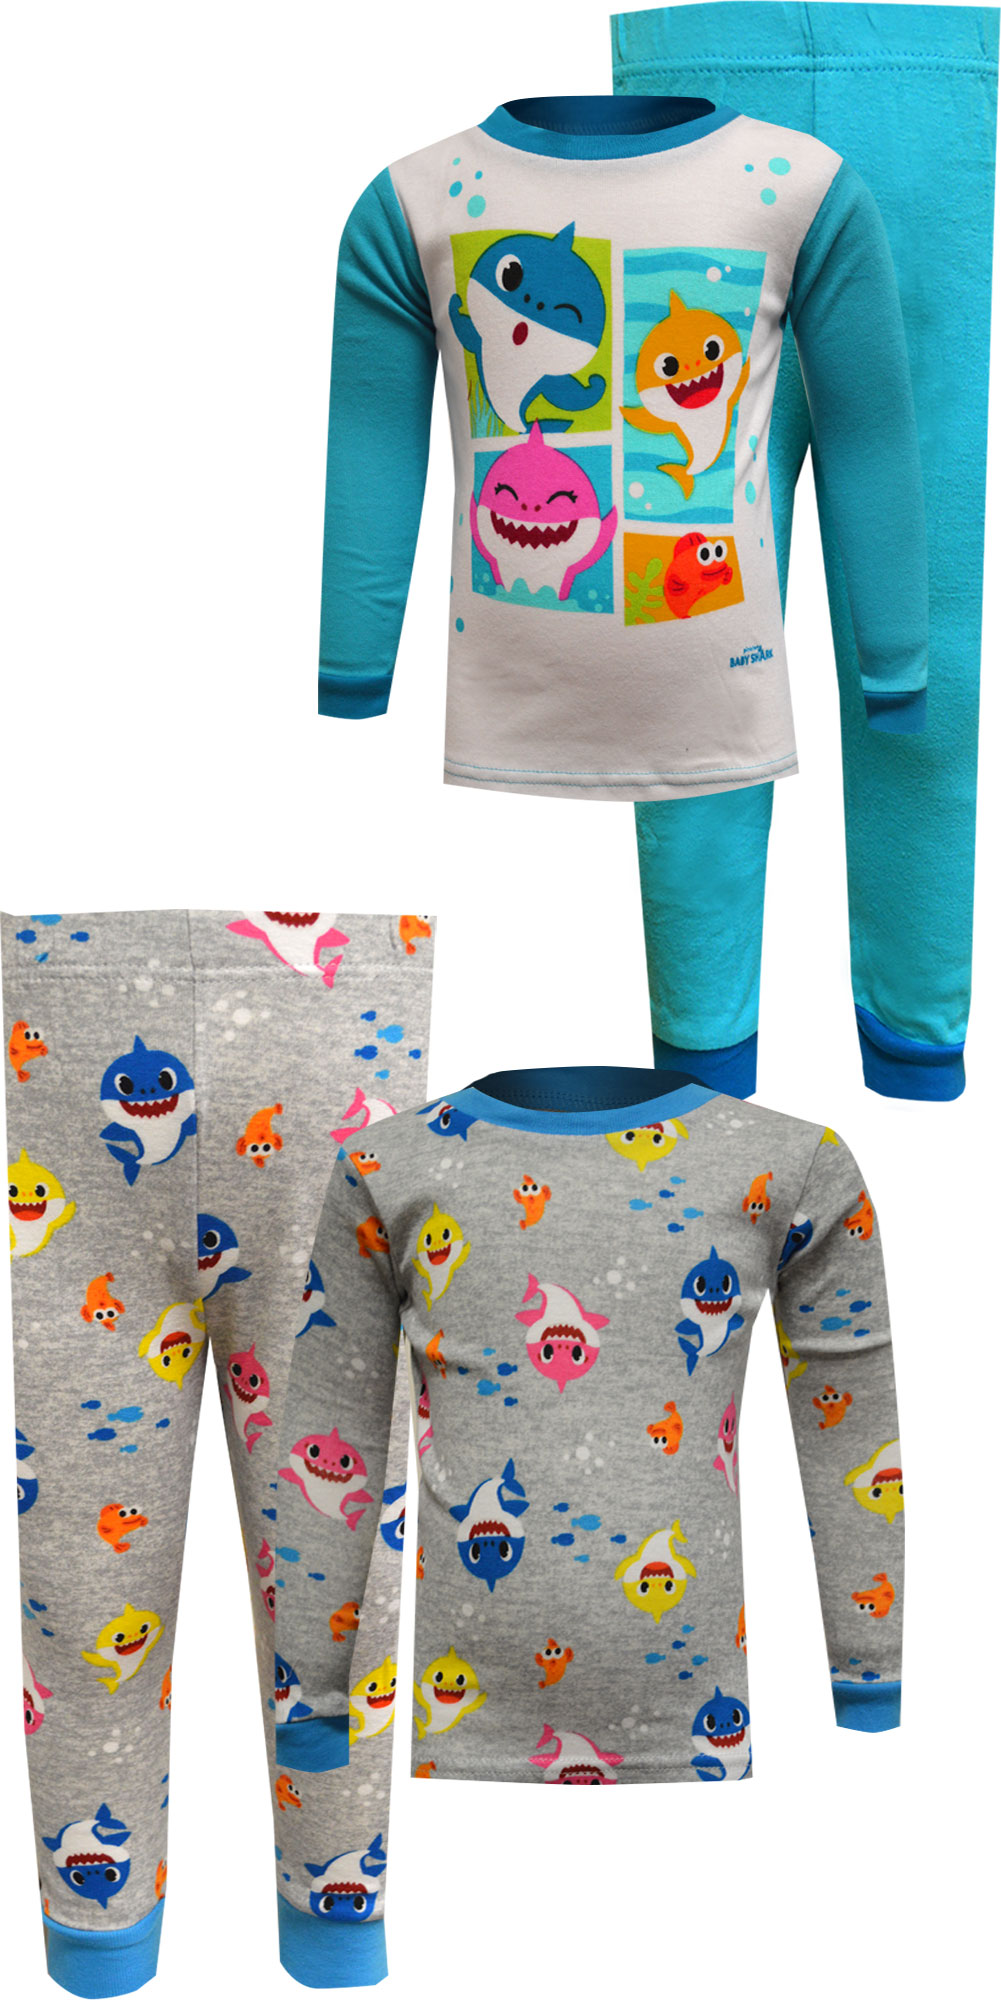 Image of Baby Shark 4 Piece Blue Cotton Toddler Pajamas for boys